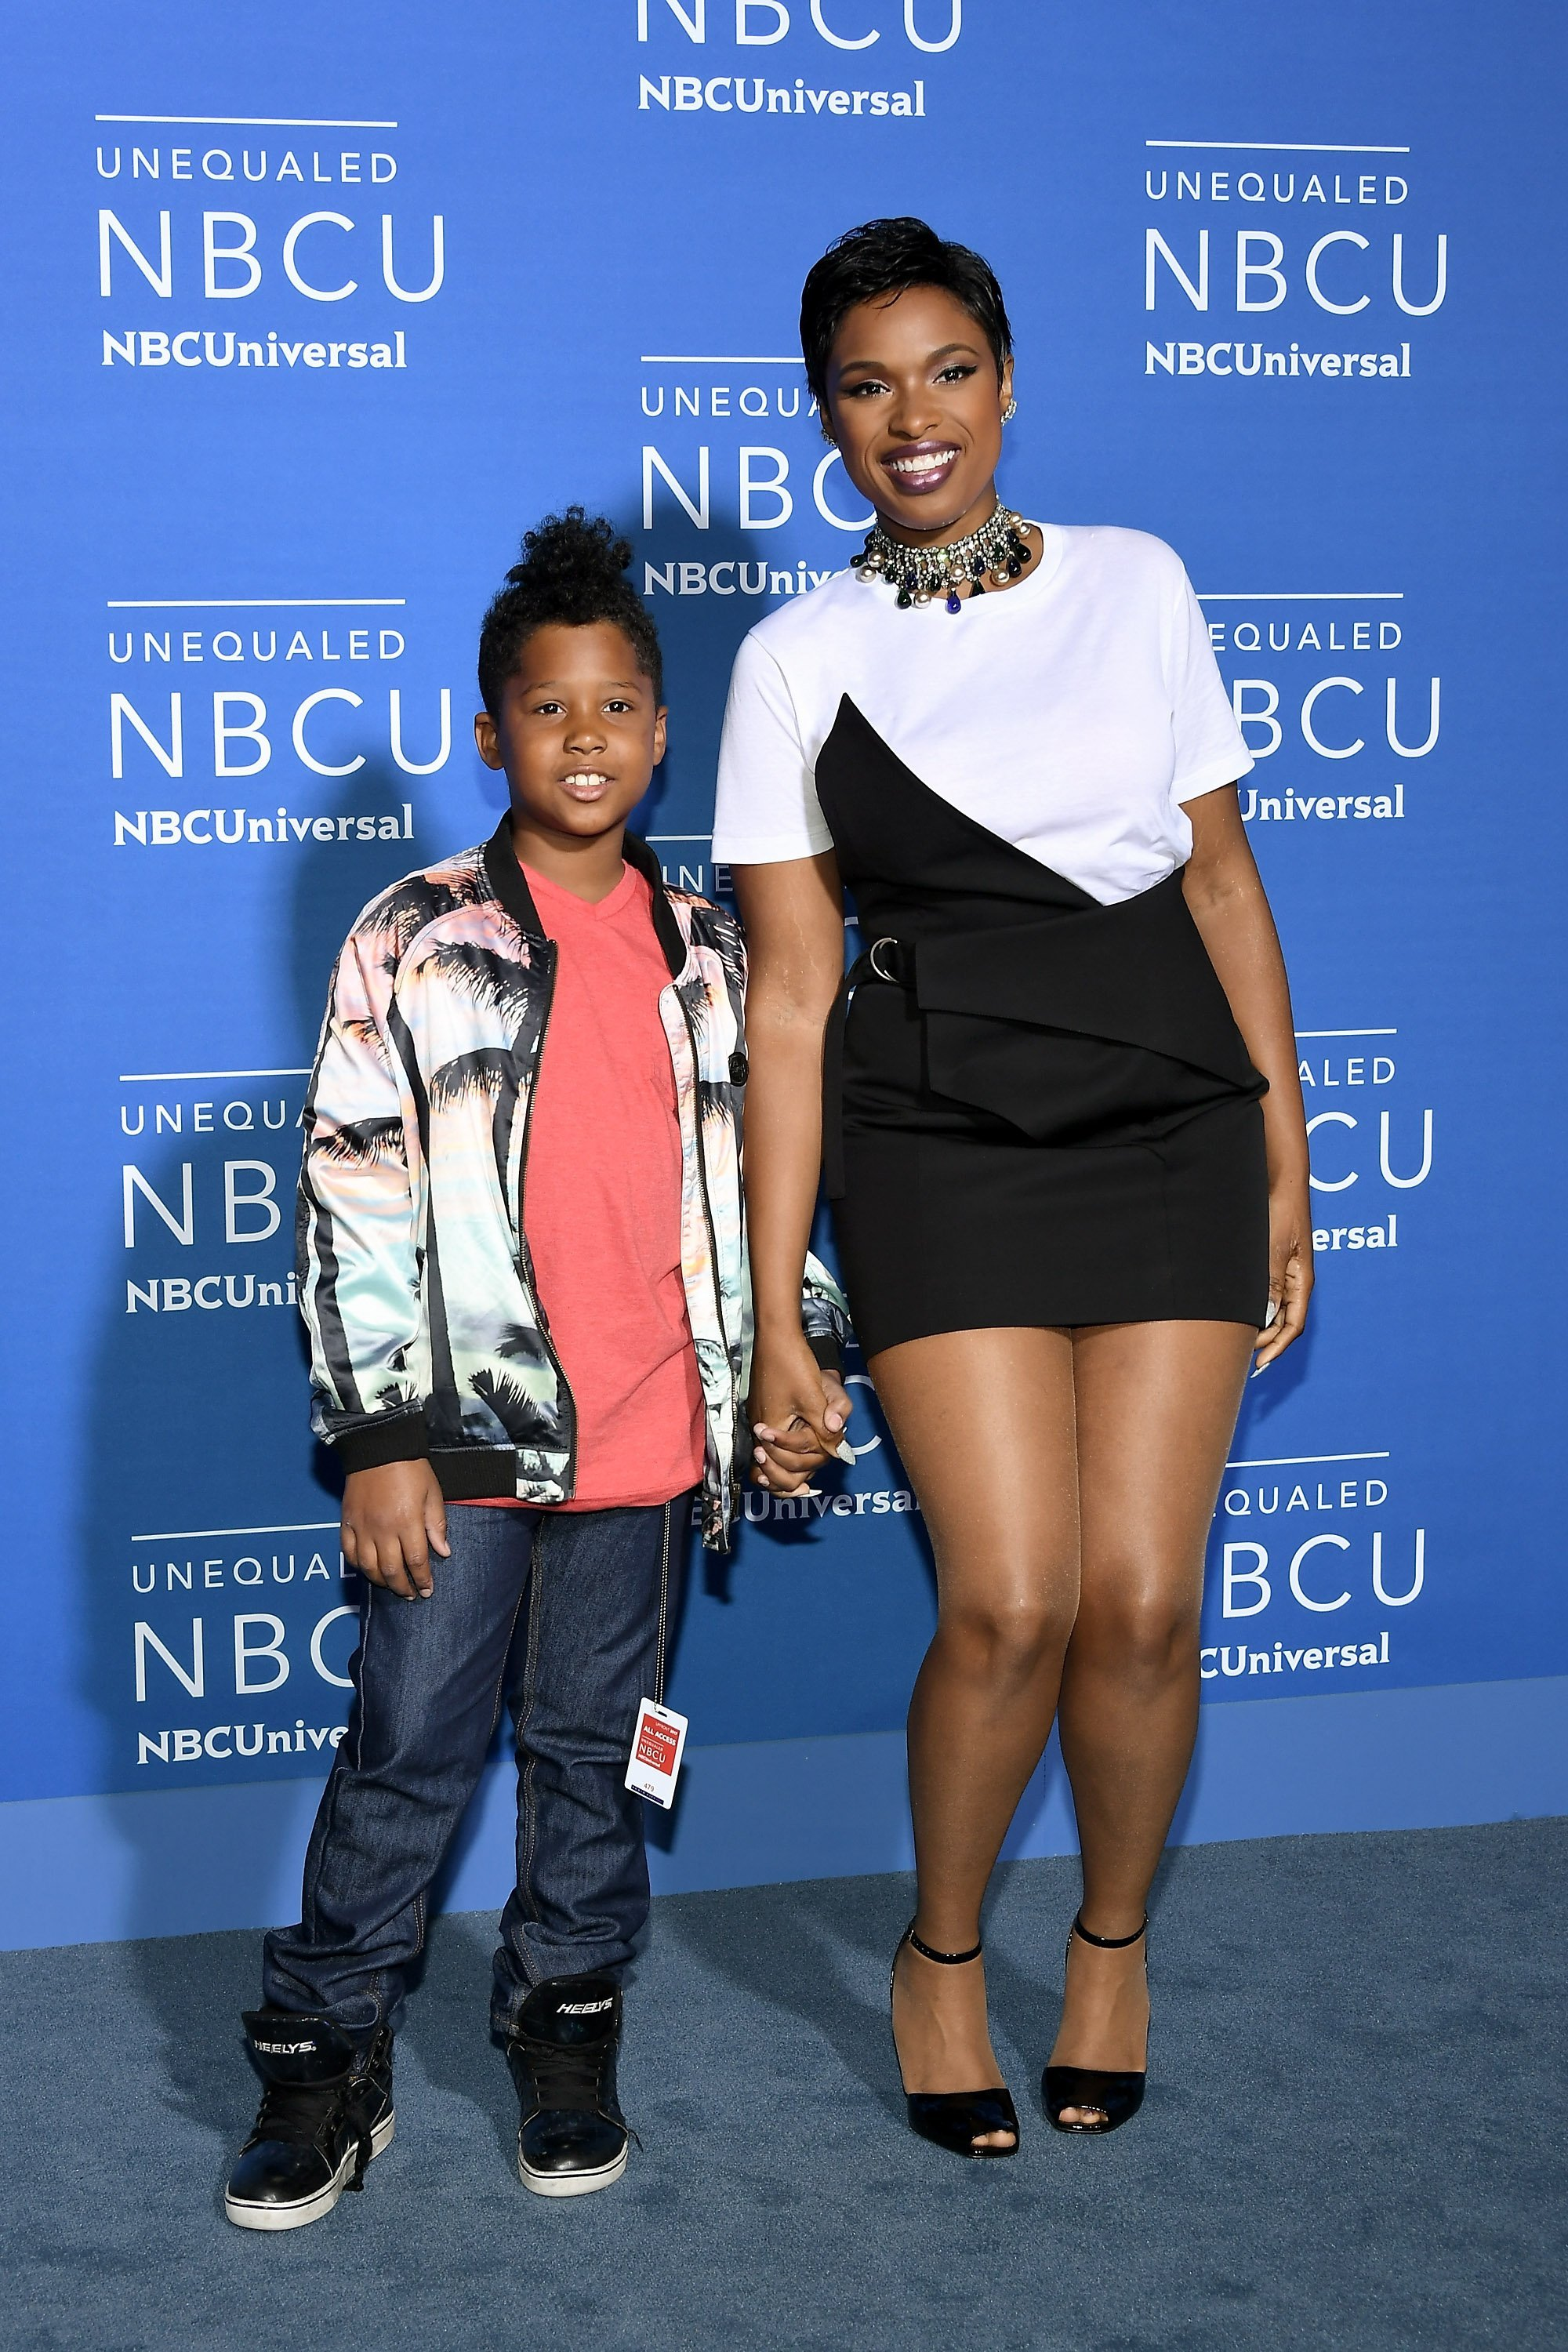 Jennifer Hudson and son, David Otunga Jr. at the 2017 NBC Universal Upfront in New York. | Photo: Getty Images